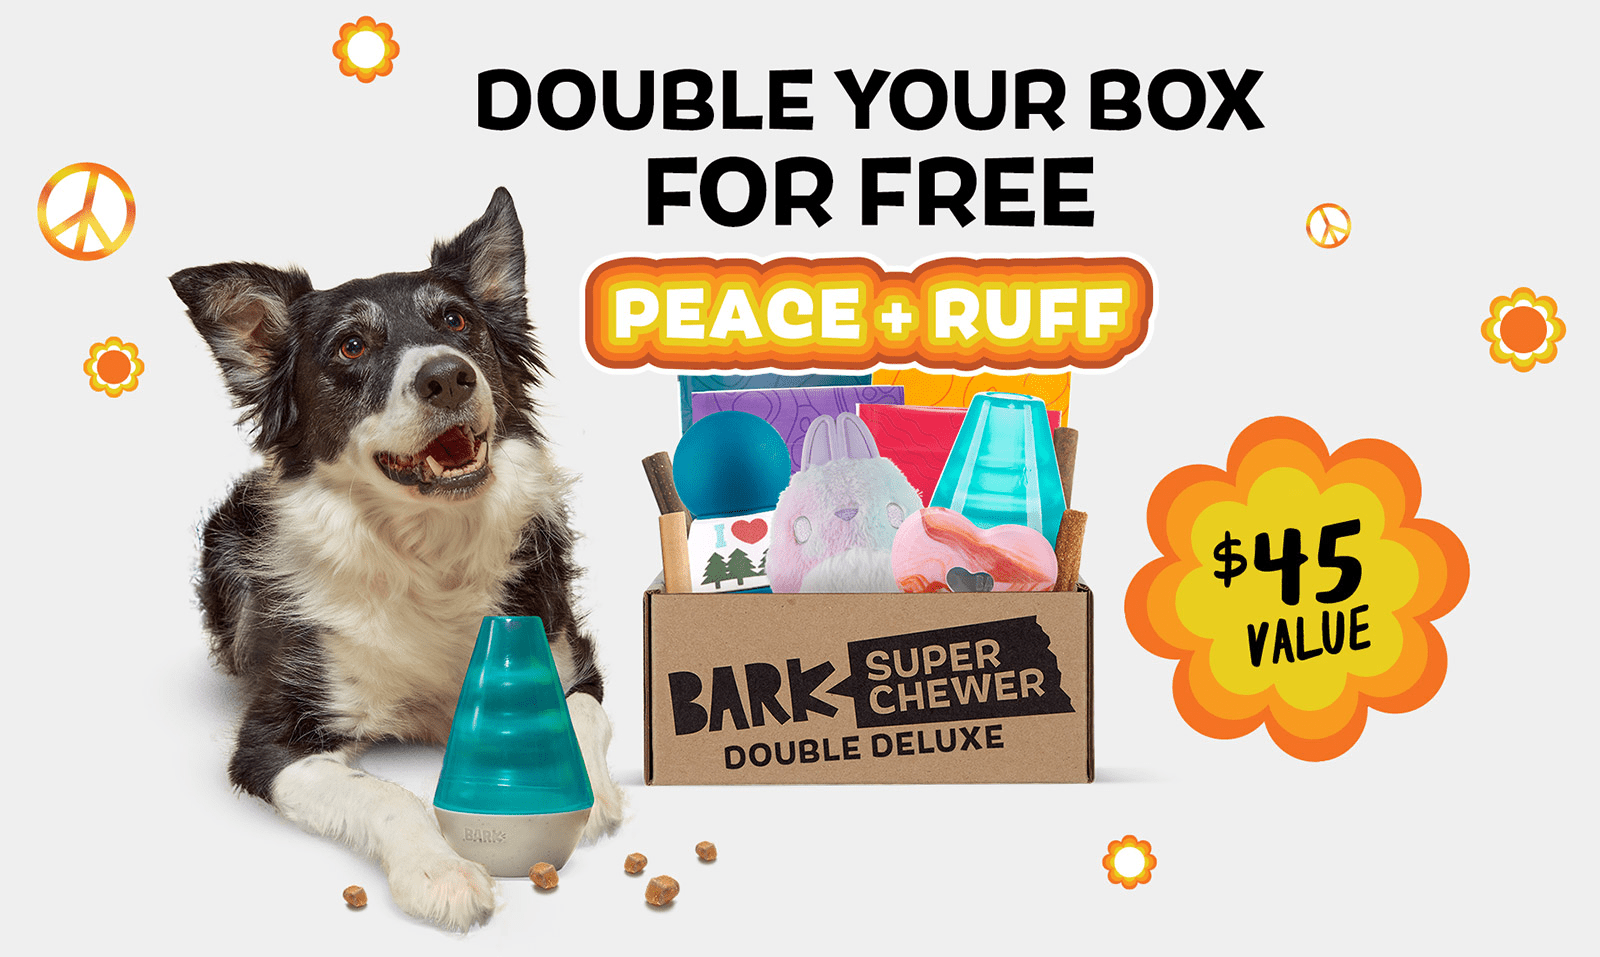 BarkBox Super Chewer Coupon Code – Double Your First Box